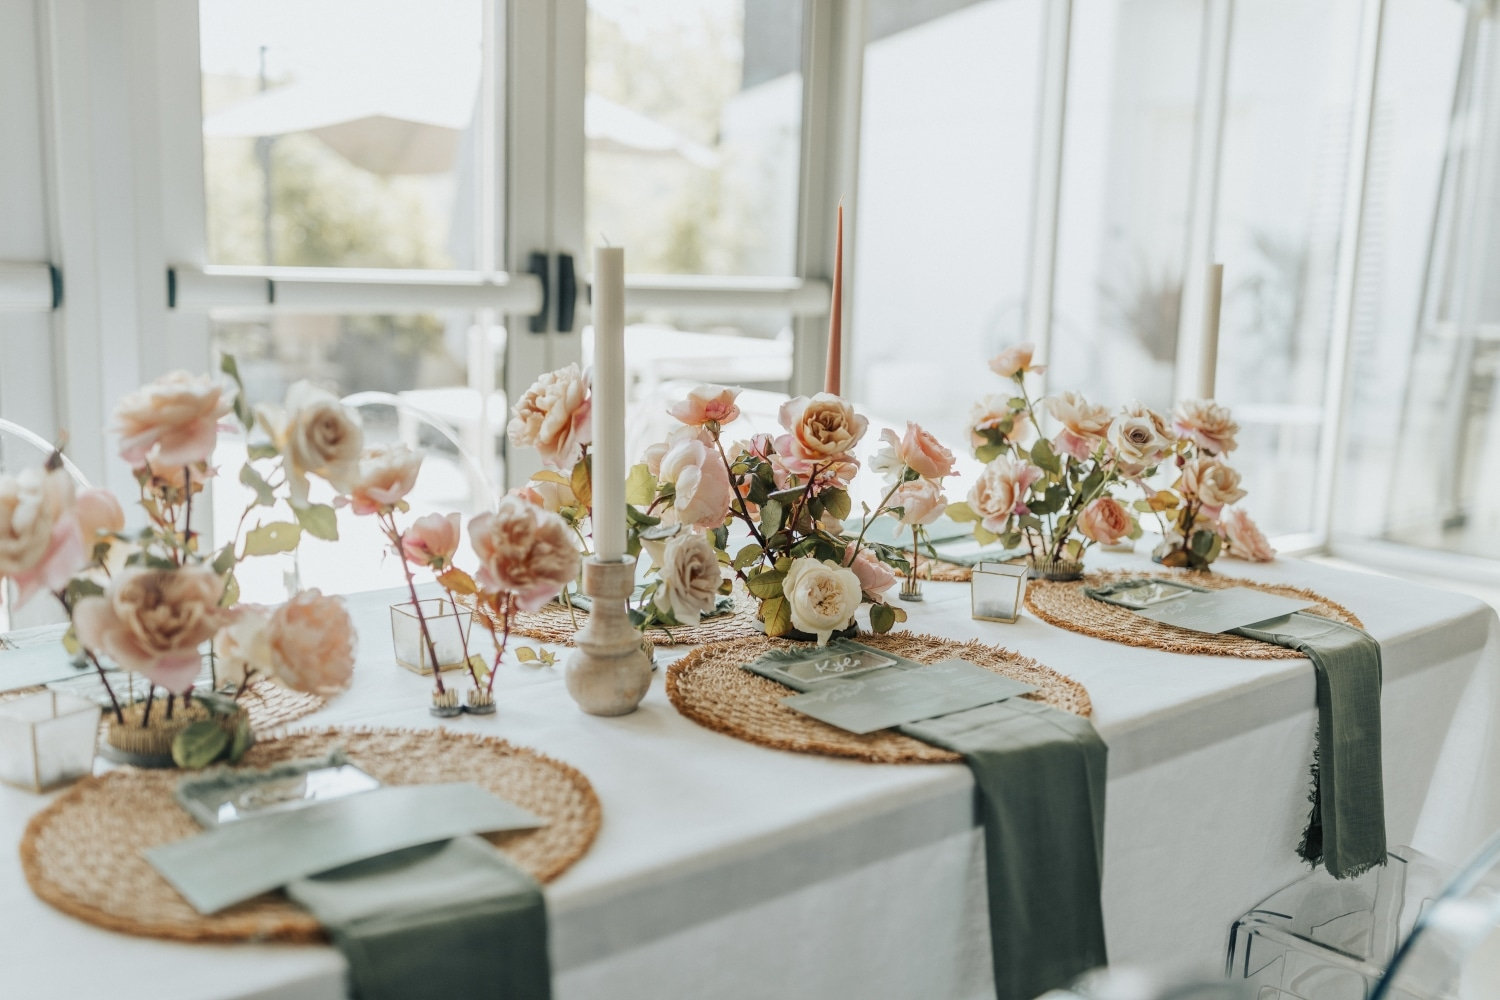 pink and peach florals as centerpieces with emerald green table